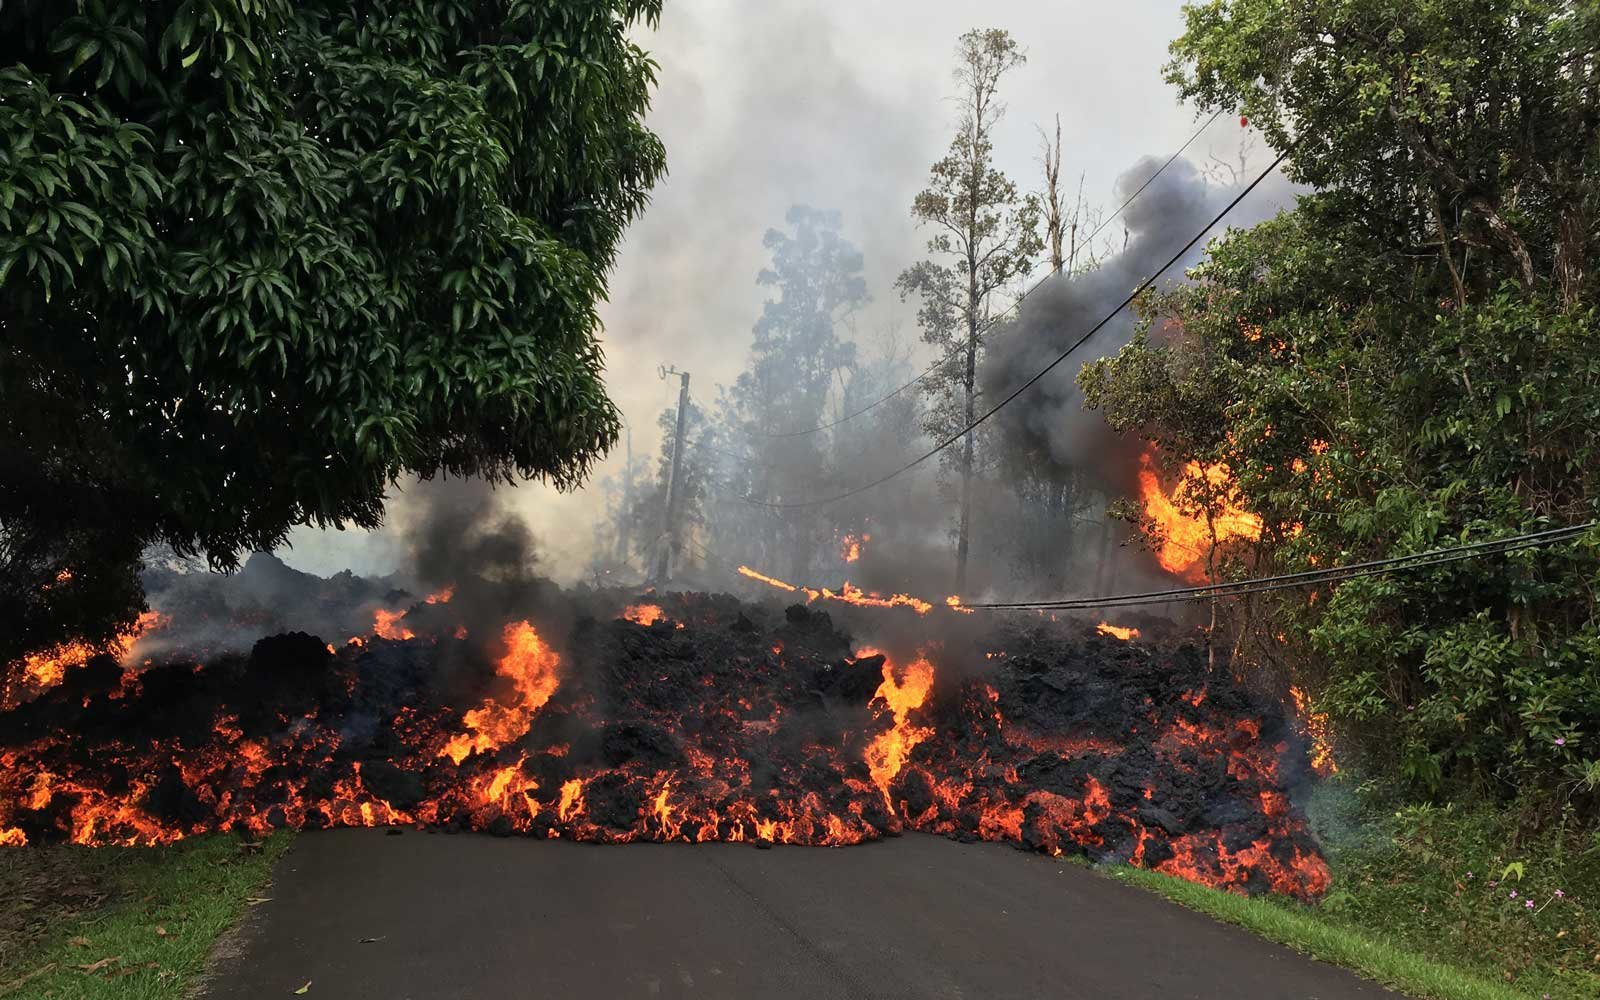 Photos And Videos Show The Incredible Destruction From The Kilauea Volcano Eruption Travel